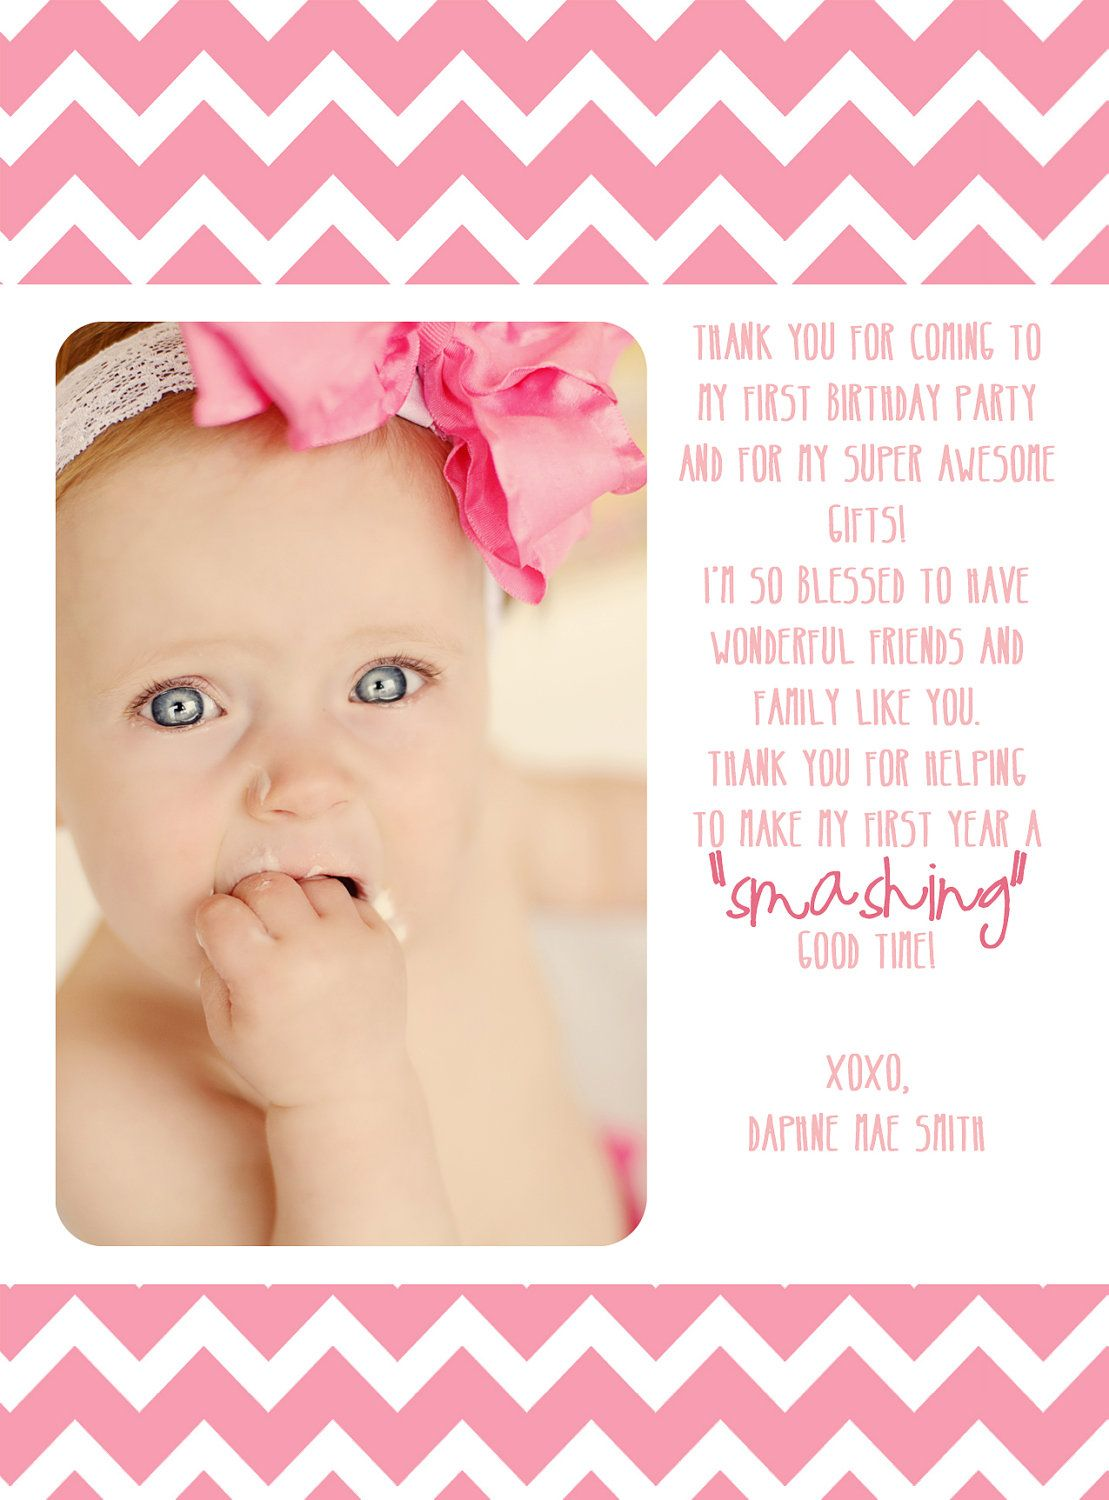 first birthday thank you card 1200 via Etsy Wish I would have